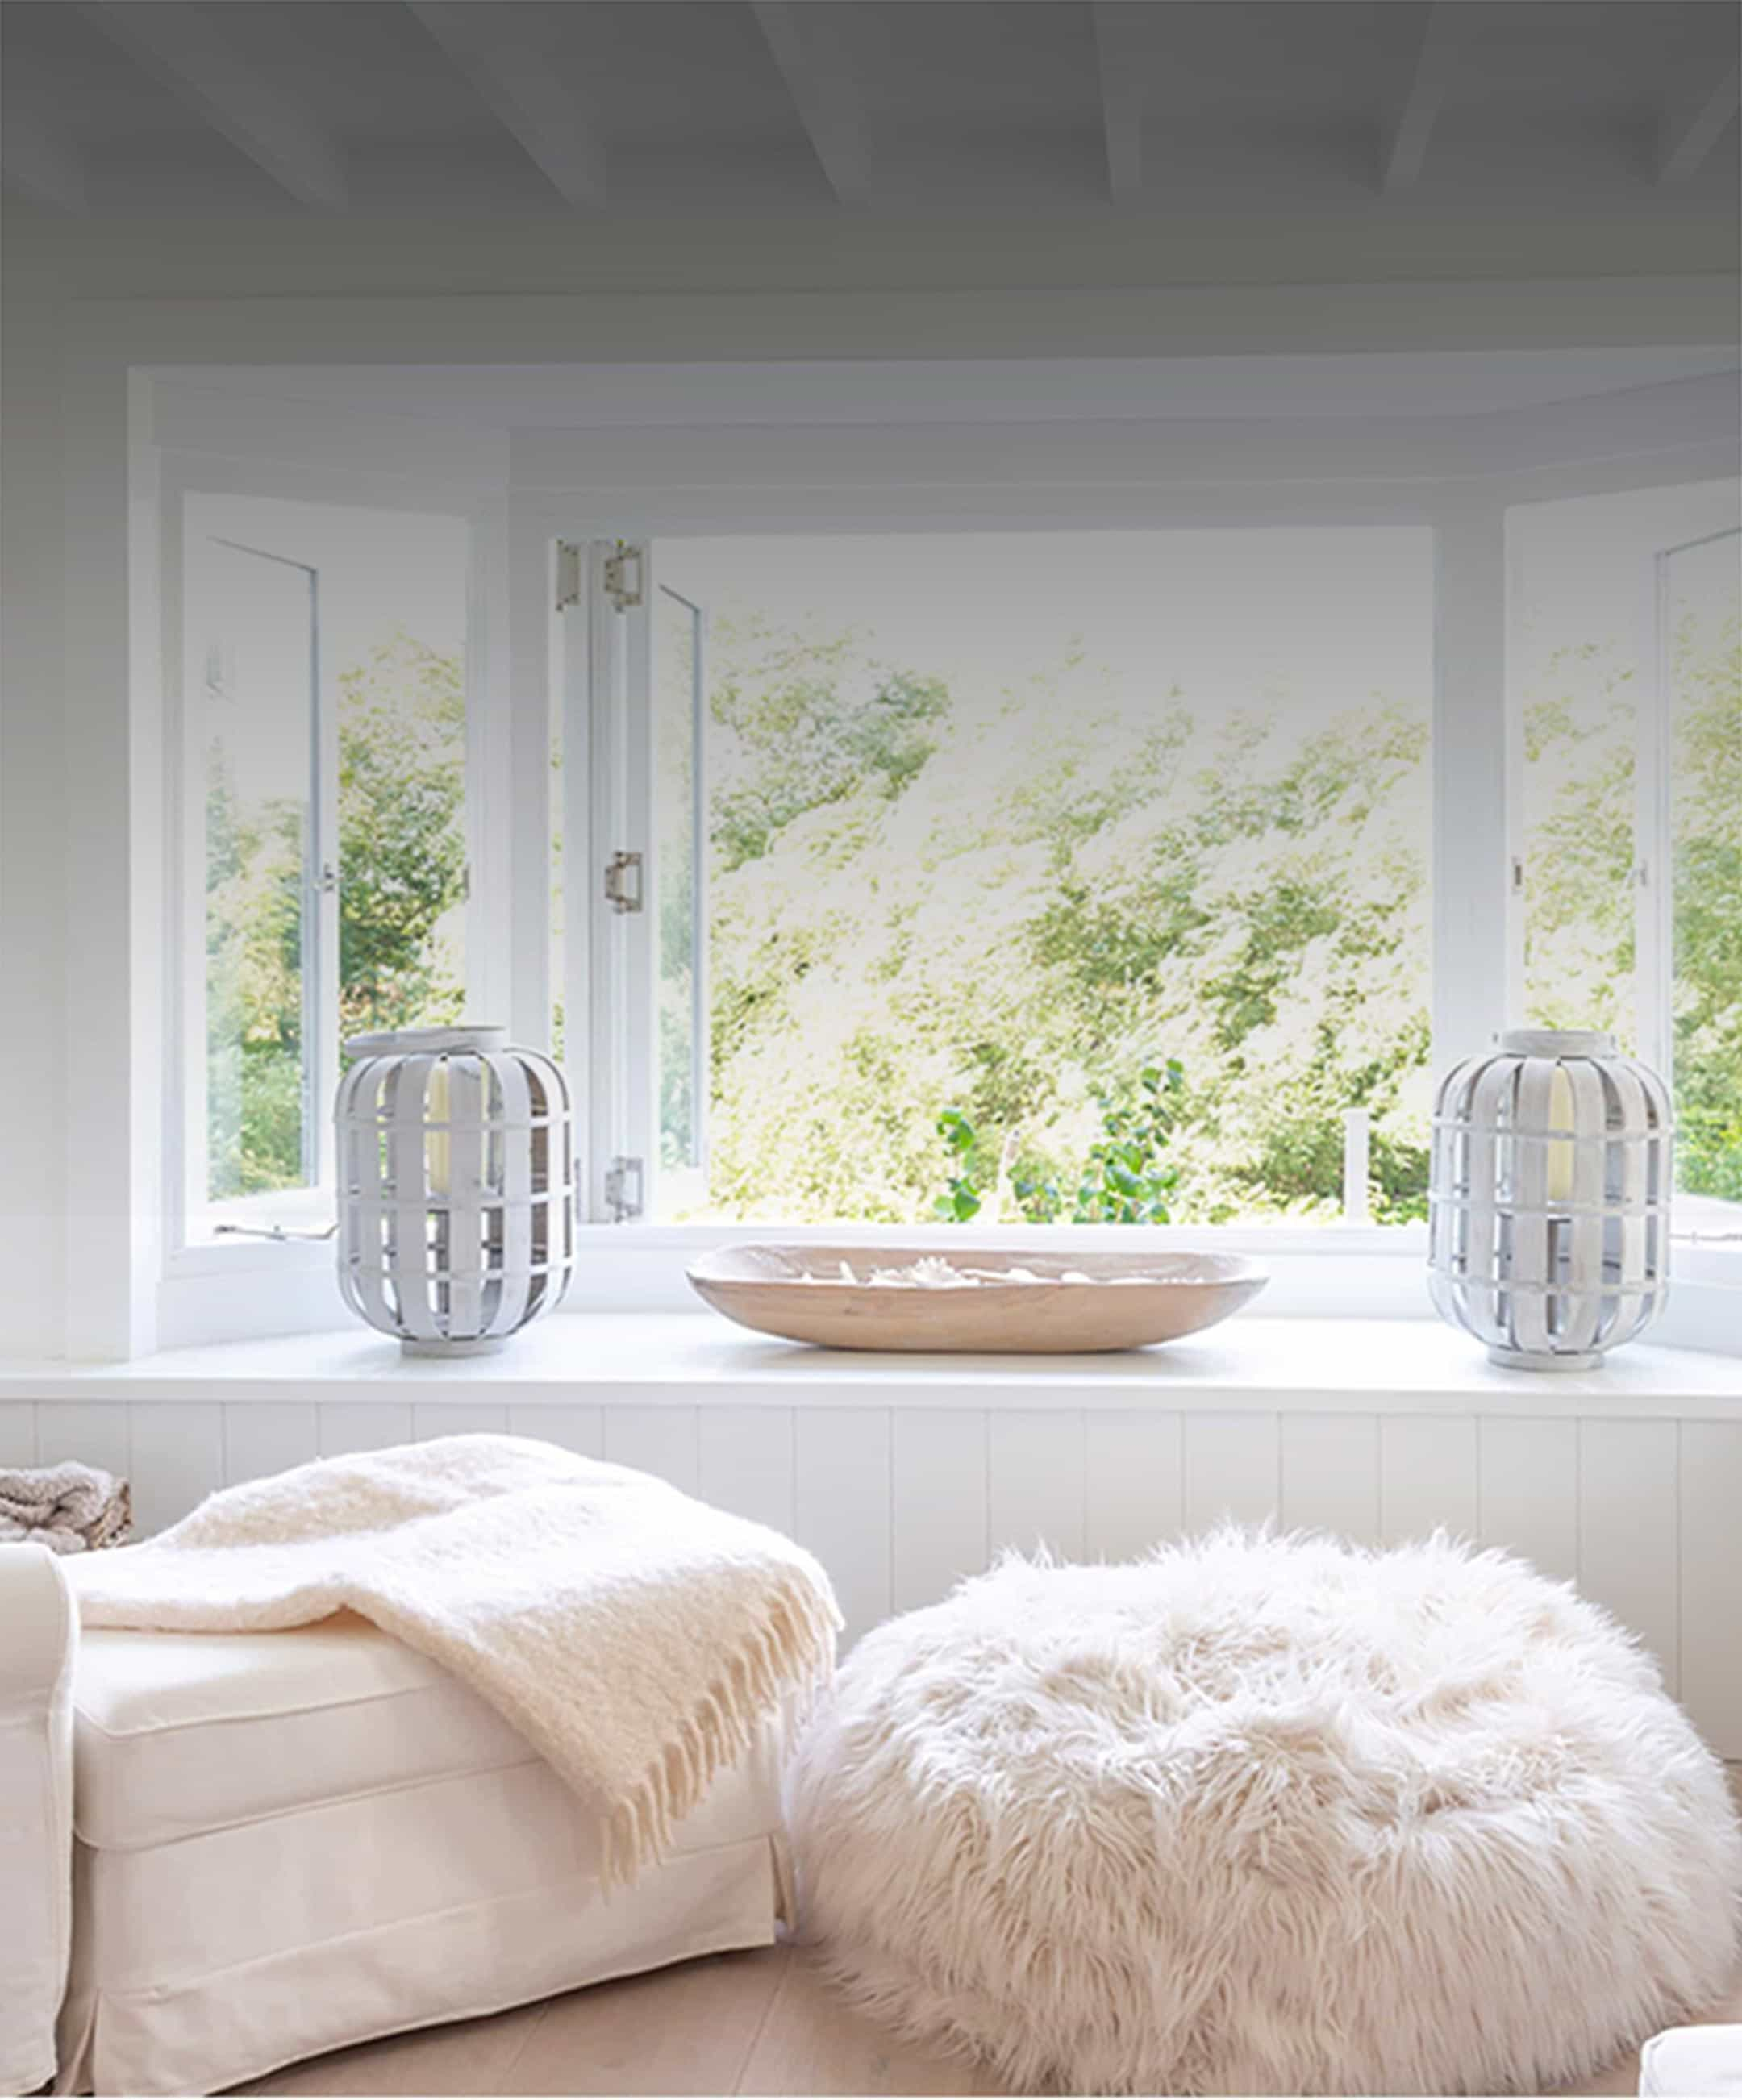 Room with fresh air at any time of year